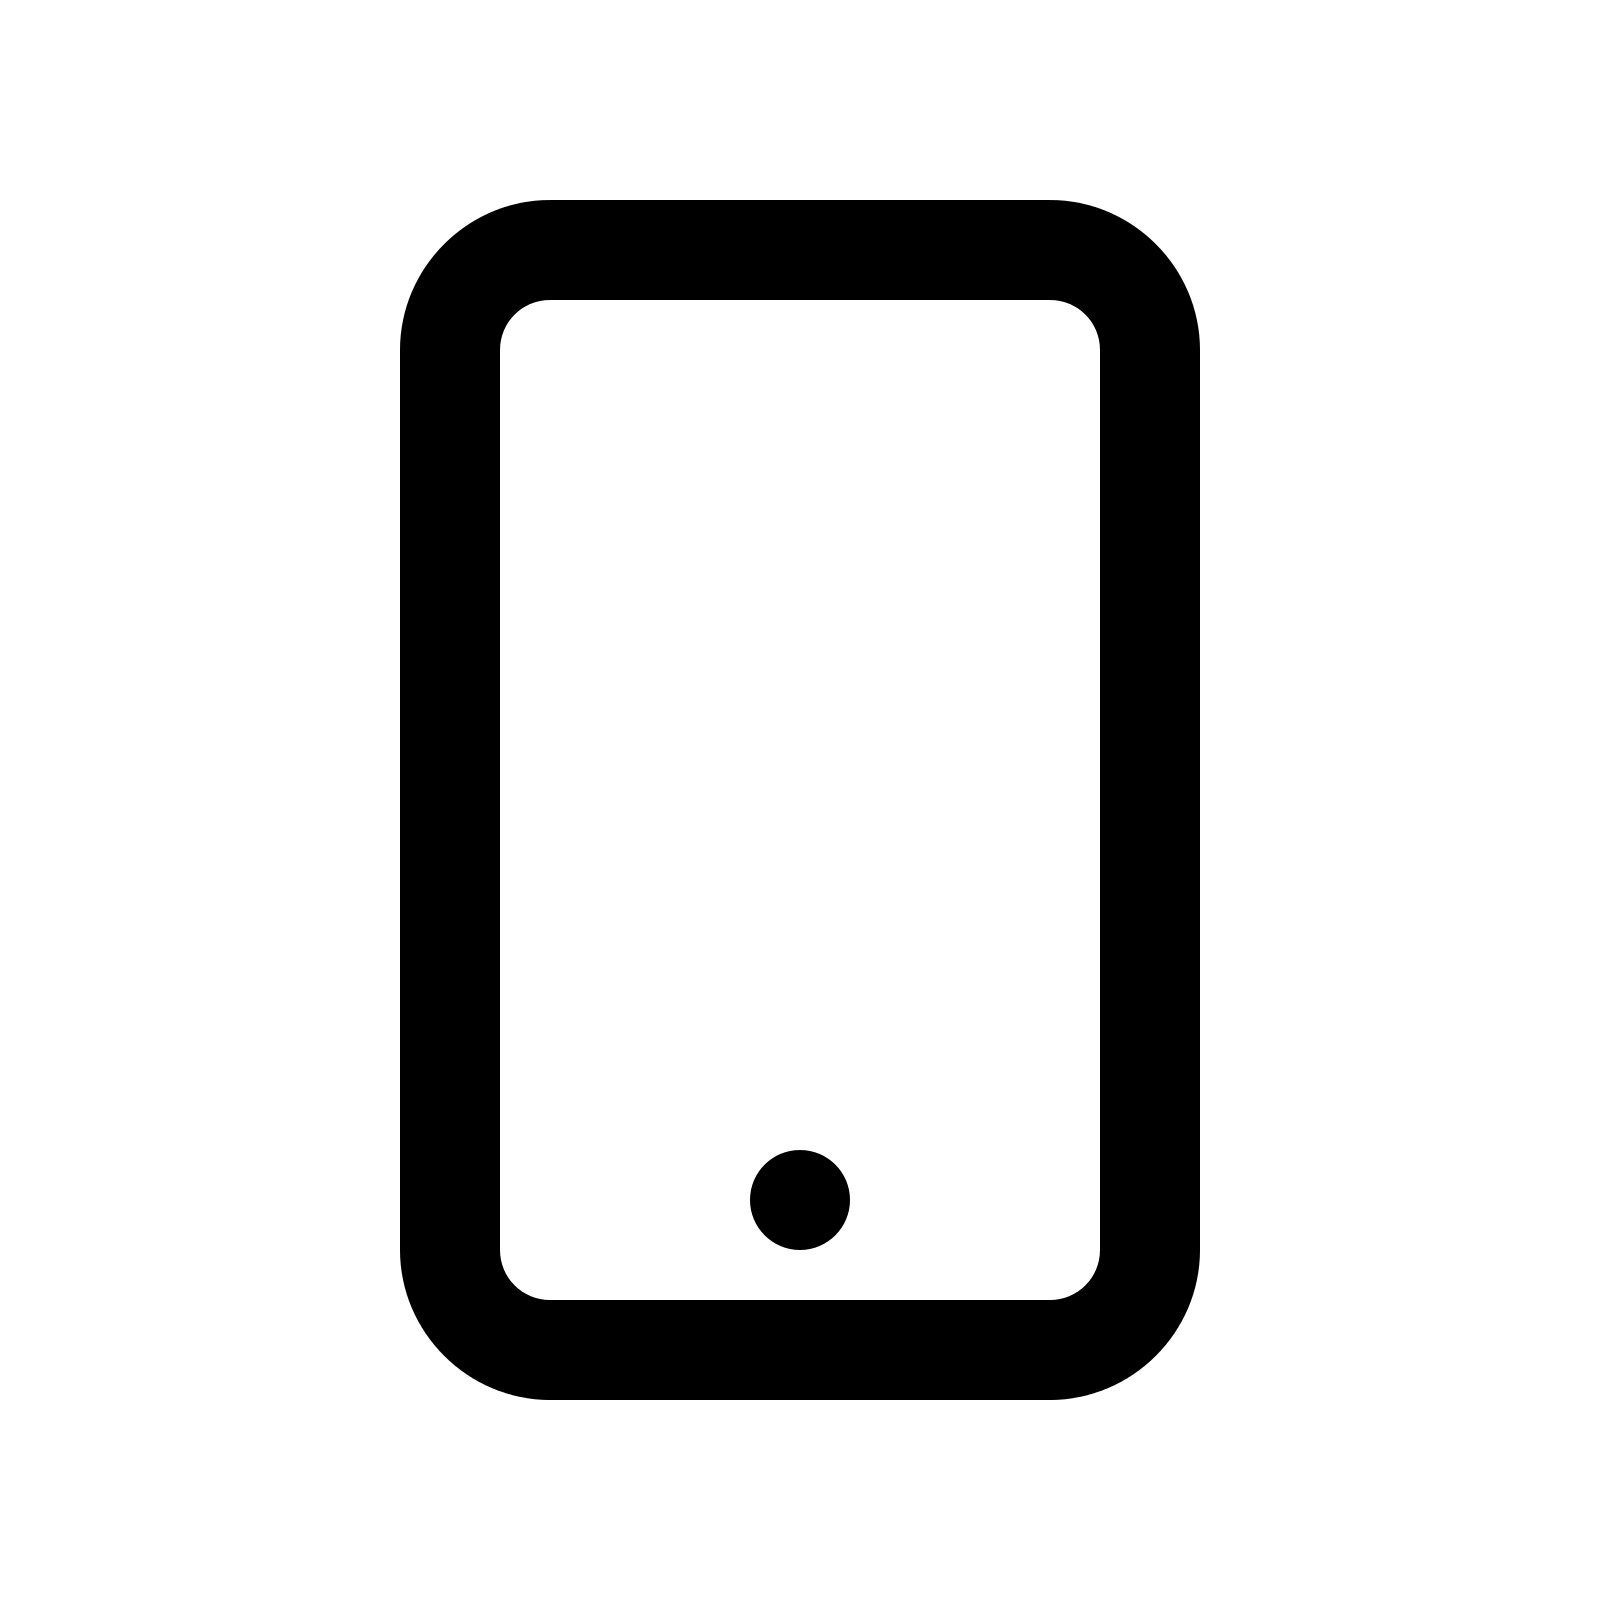 Iphone clipart mobile device Icons SVG iPhone in PNG